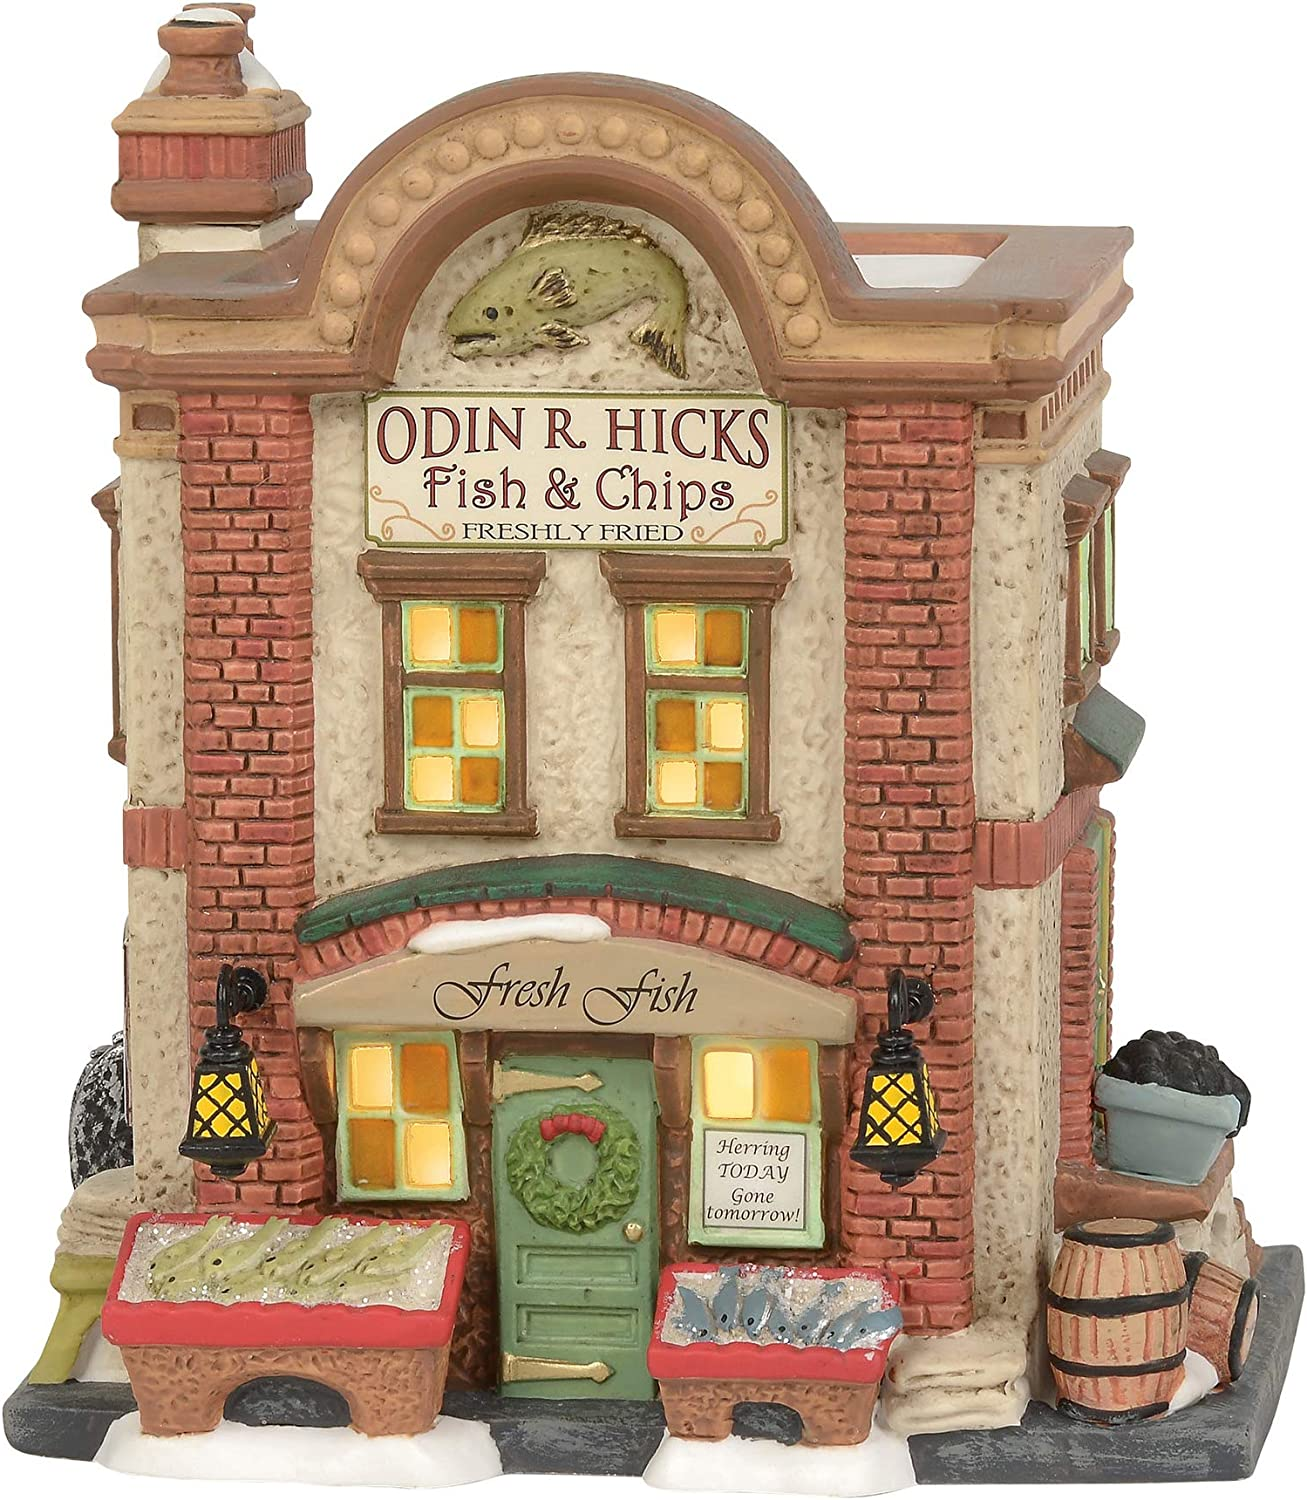 Department 56 Dickens Village Accessories Odin R. Hicks Fish and Chips Lit Building, 6.5 Inch, Multicolor